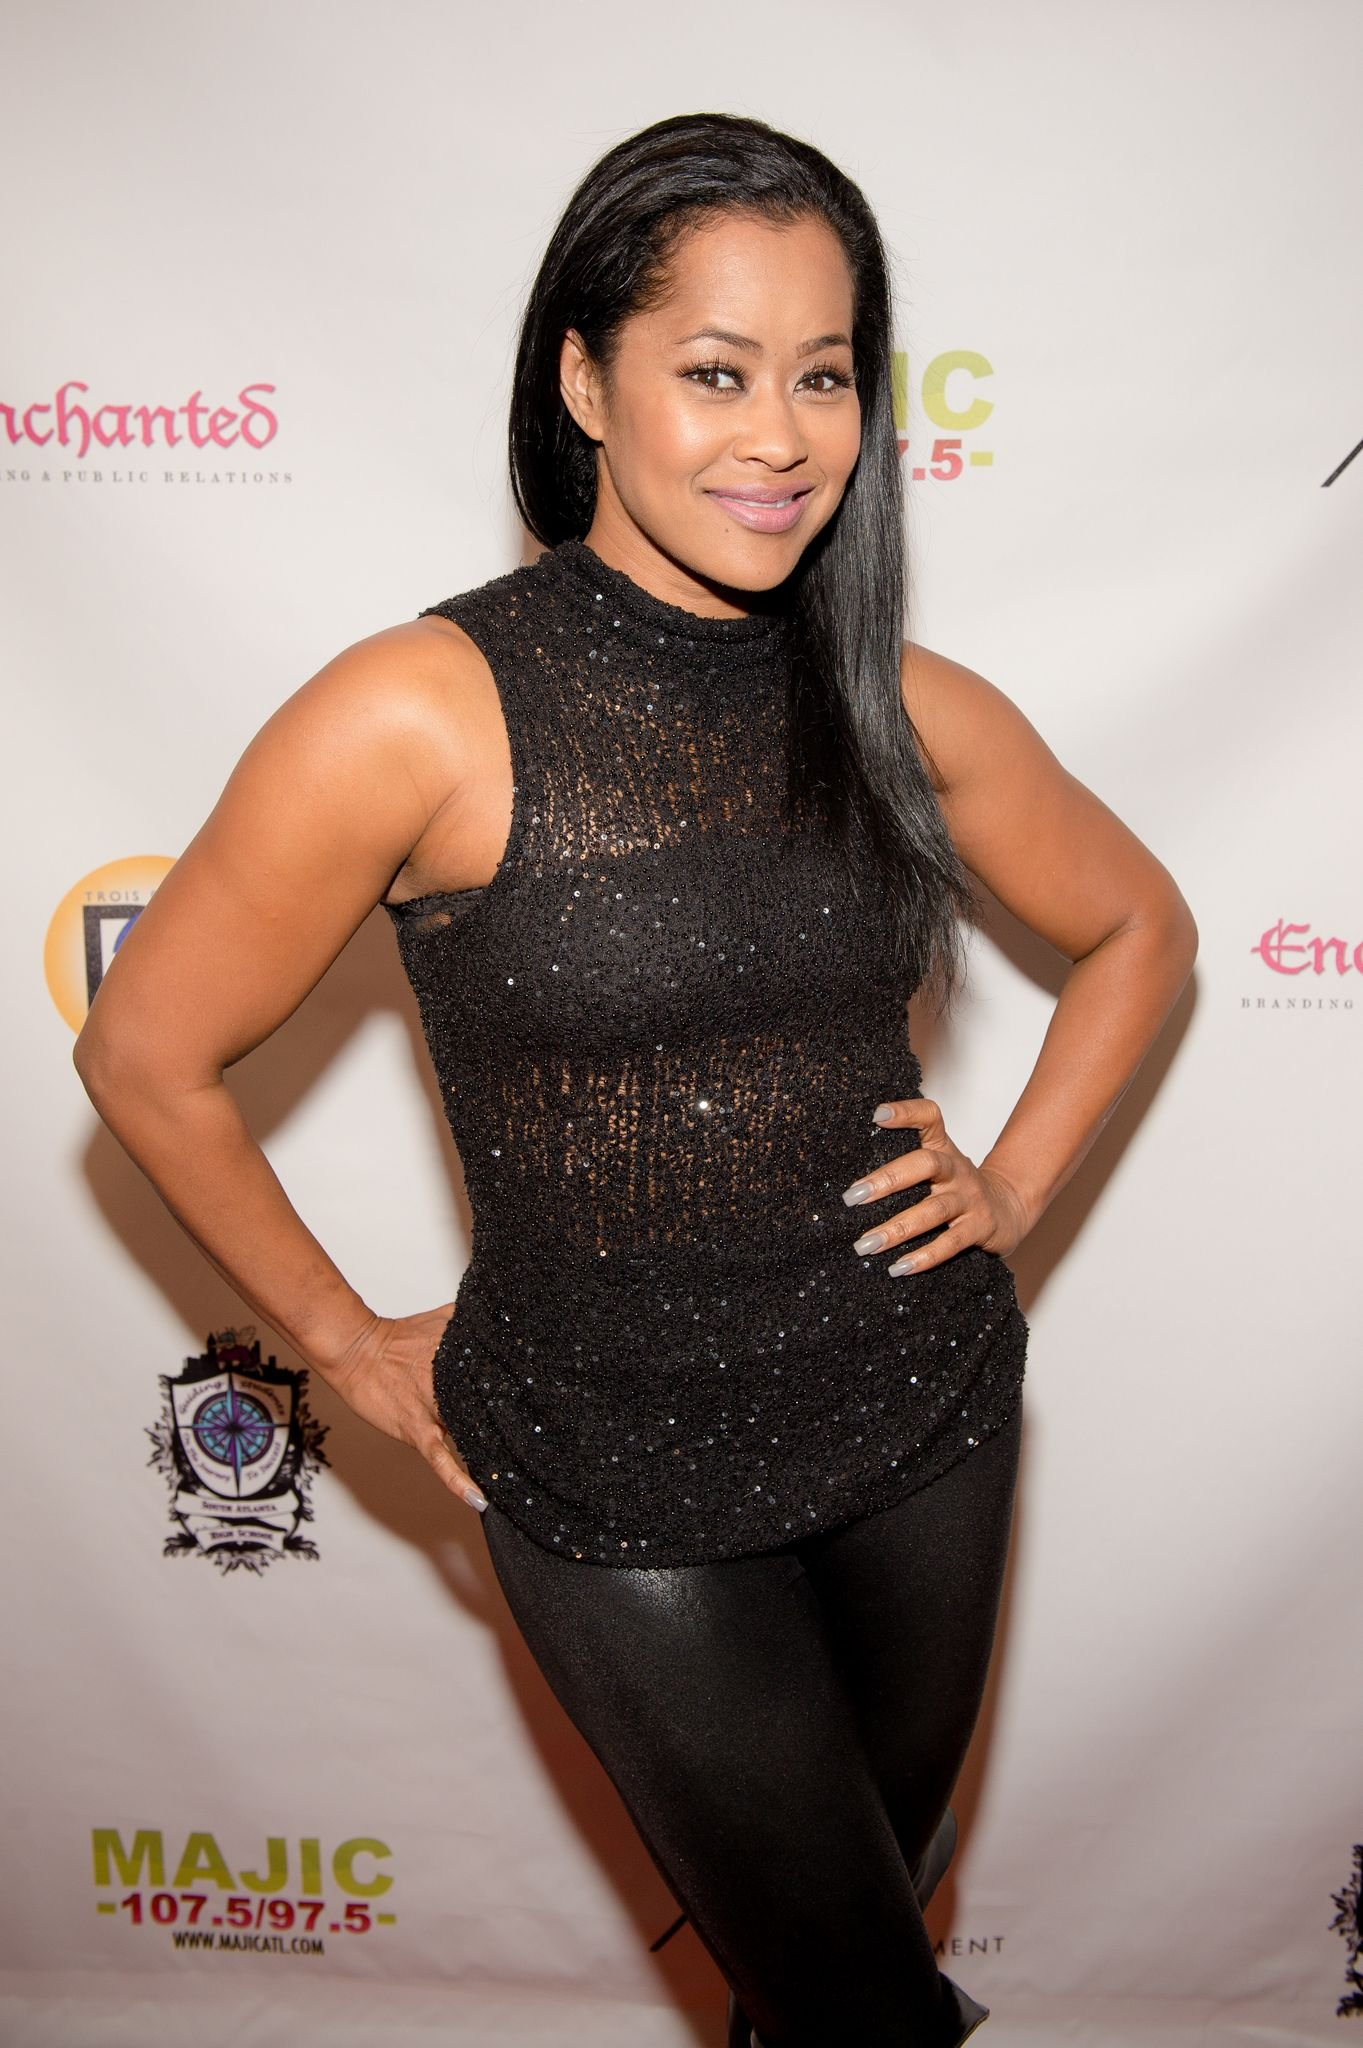 Lisa Wu at an R&B private listening party at Crossover Entertainment Group in 2017 in Atlanta, Georgia | Source: Getty Images